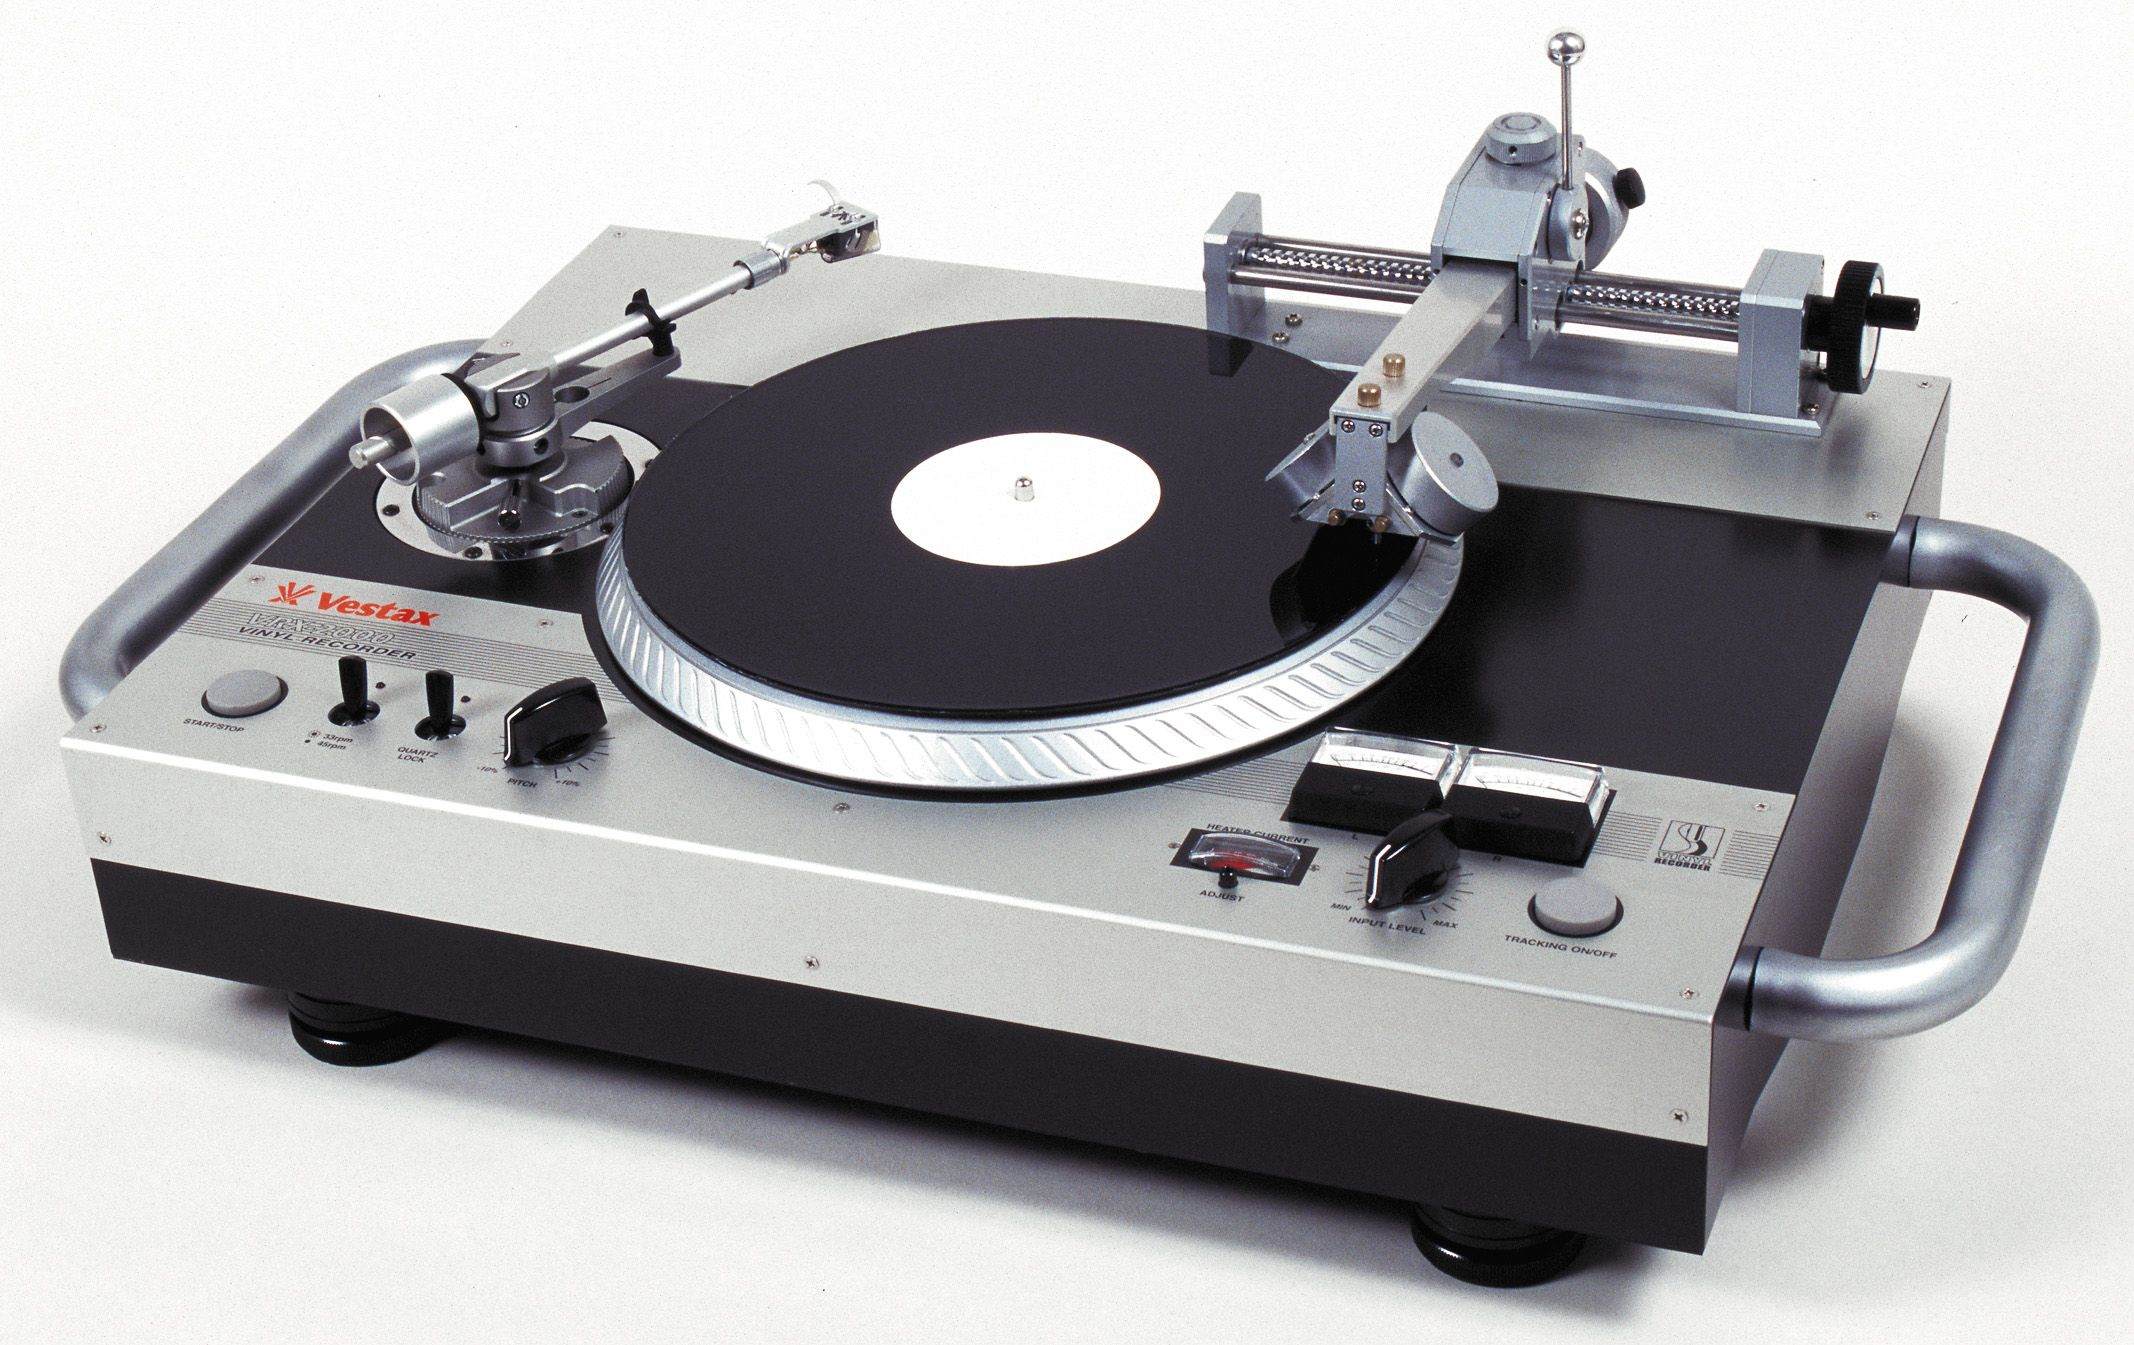 Uniquely Approaching The Art Of Vinyl Recording The